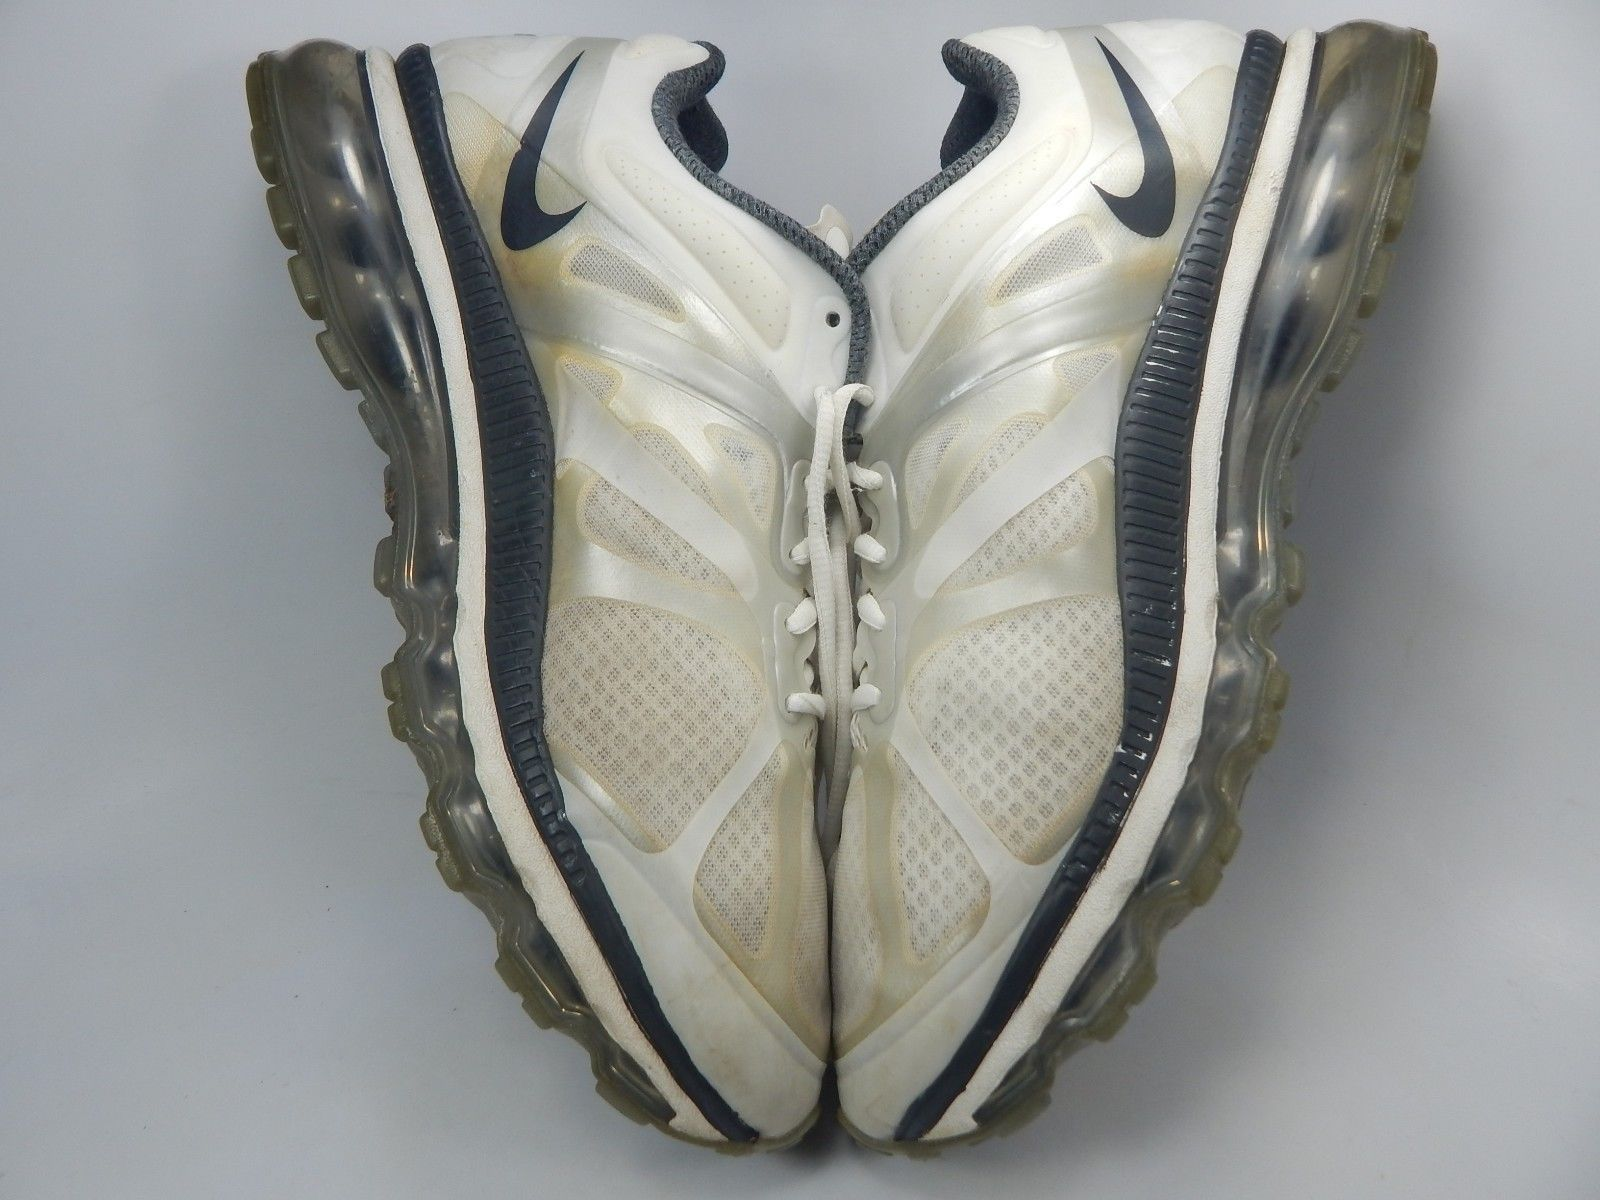 Nike Air Max+ 2012 Running Shoes Men's Size US 12.5 M (D) EU 47 White 487982-100